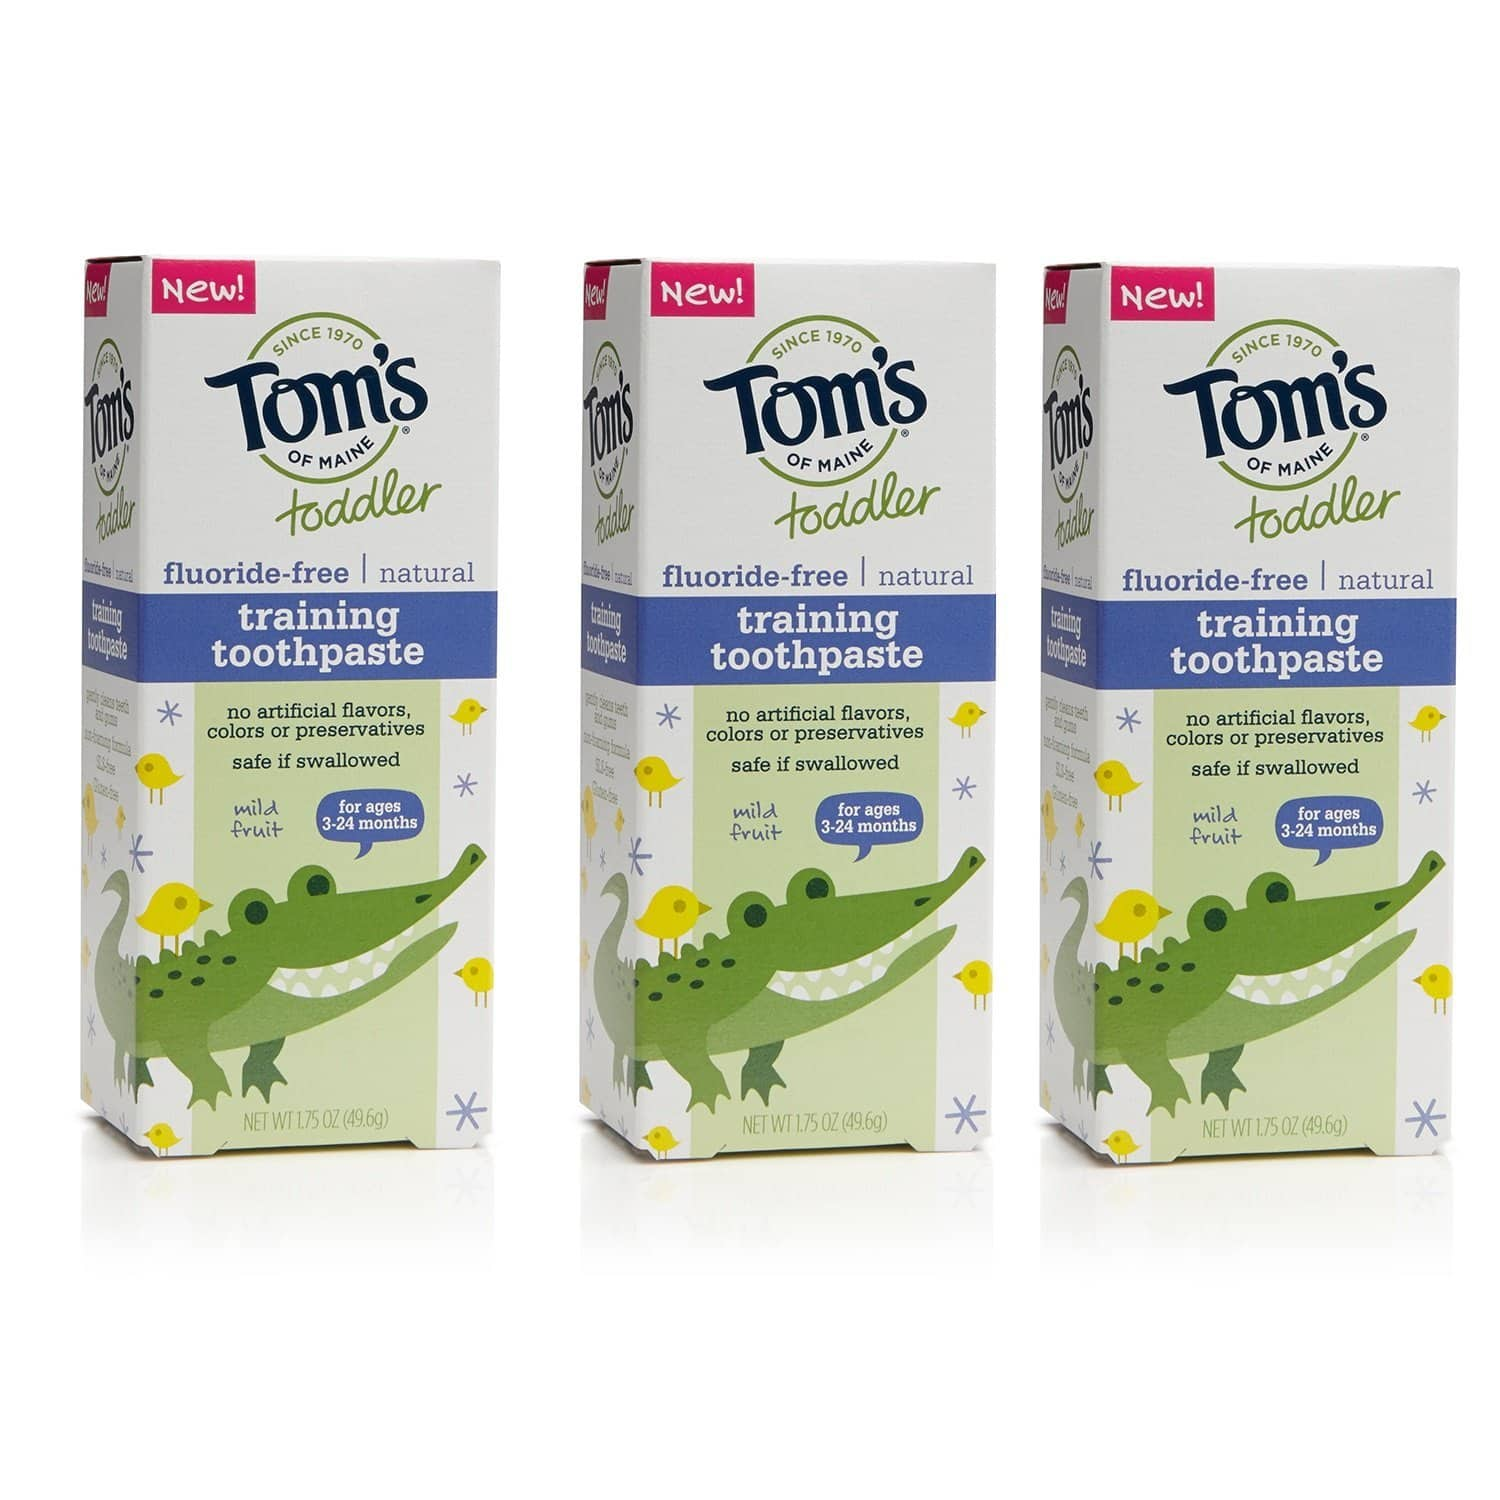 Tom's of Maine Toddlers Fluoride-Free Natural Toothpaste in Gel, Mild Fruit, 1.75 Ounce, 3 Count $6.96+ fs@amazon